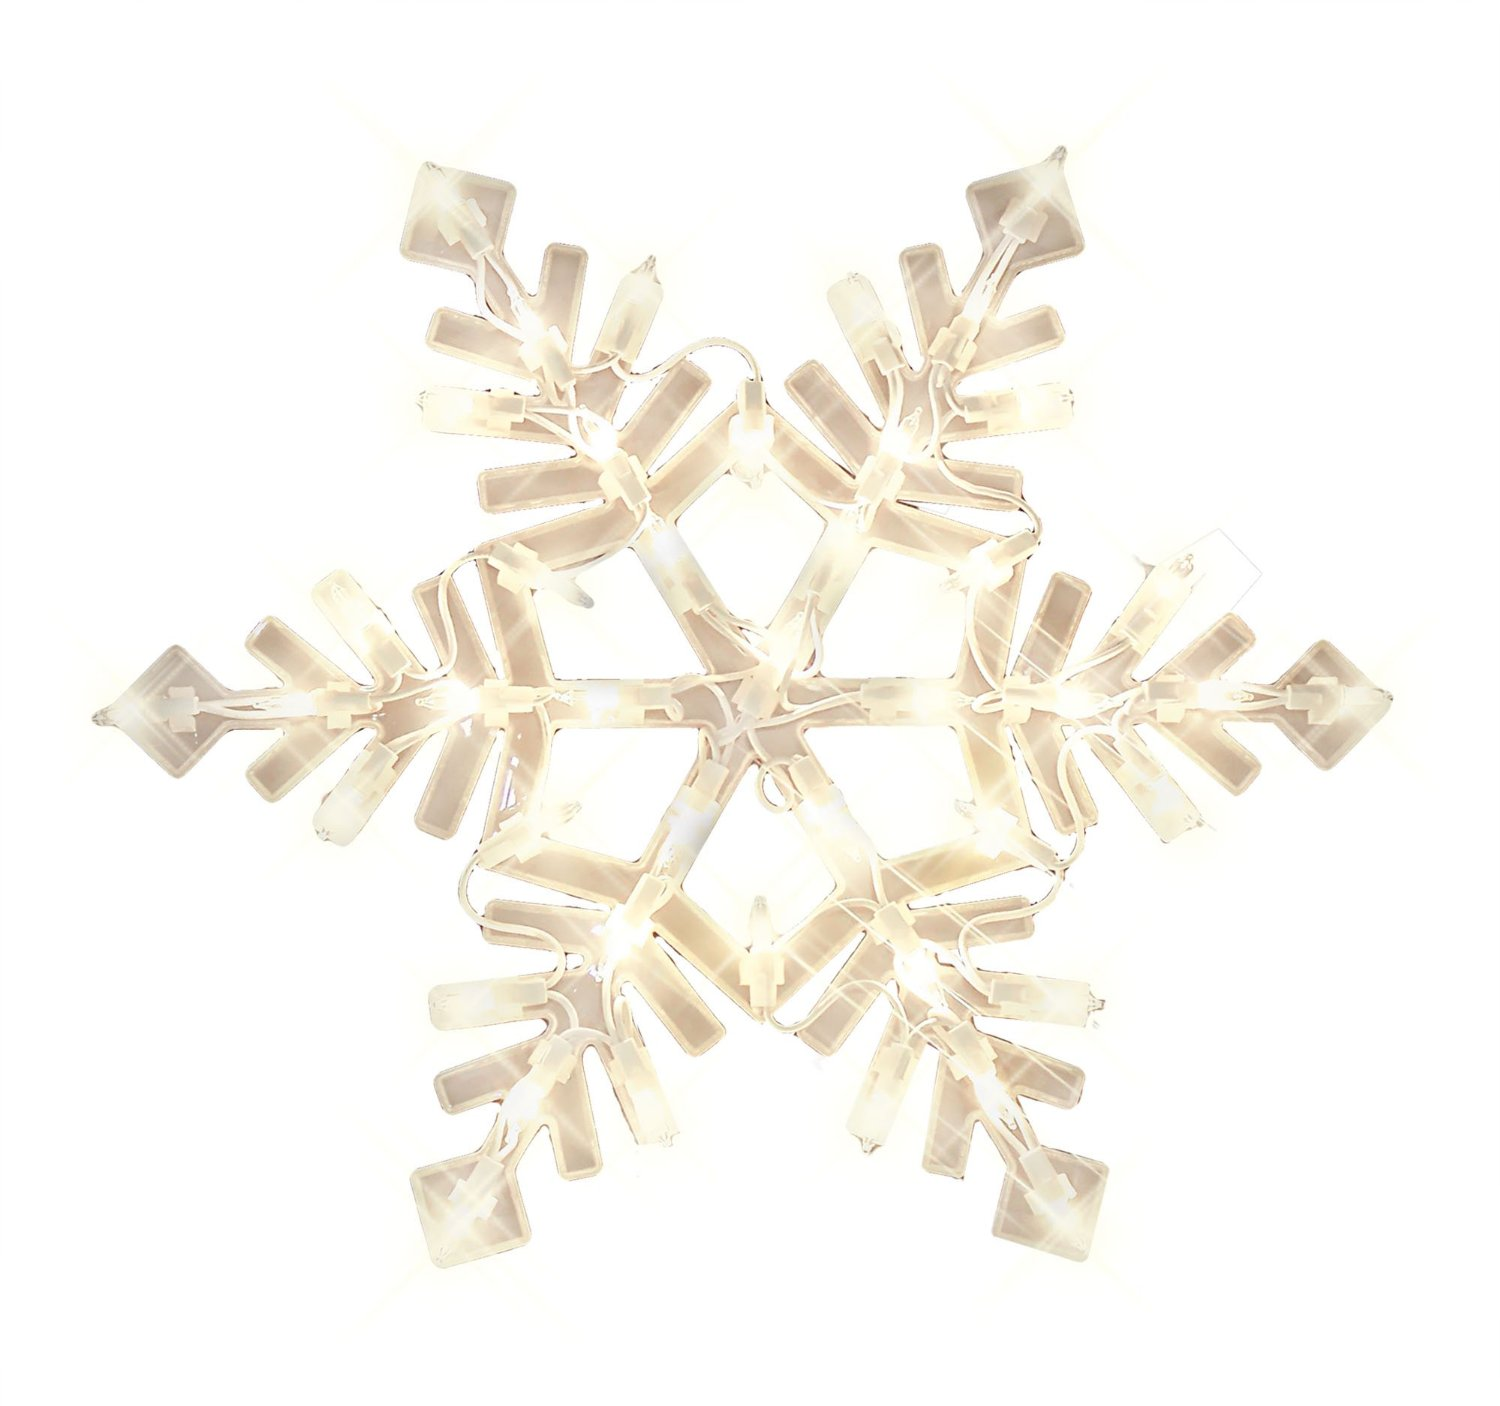 impact innovation import 94999 christmas window decoration lighted snowflake with suction cups 43 lights 14 x 1 x 17 b00gvjwpac